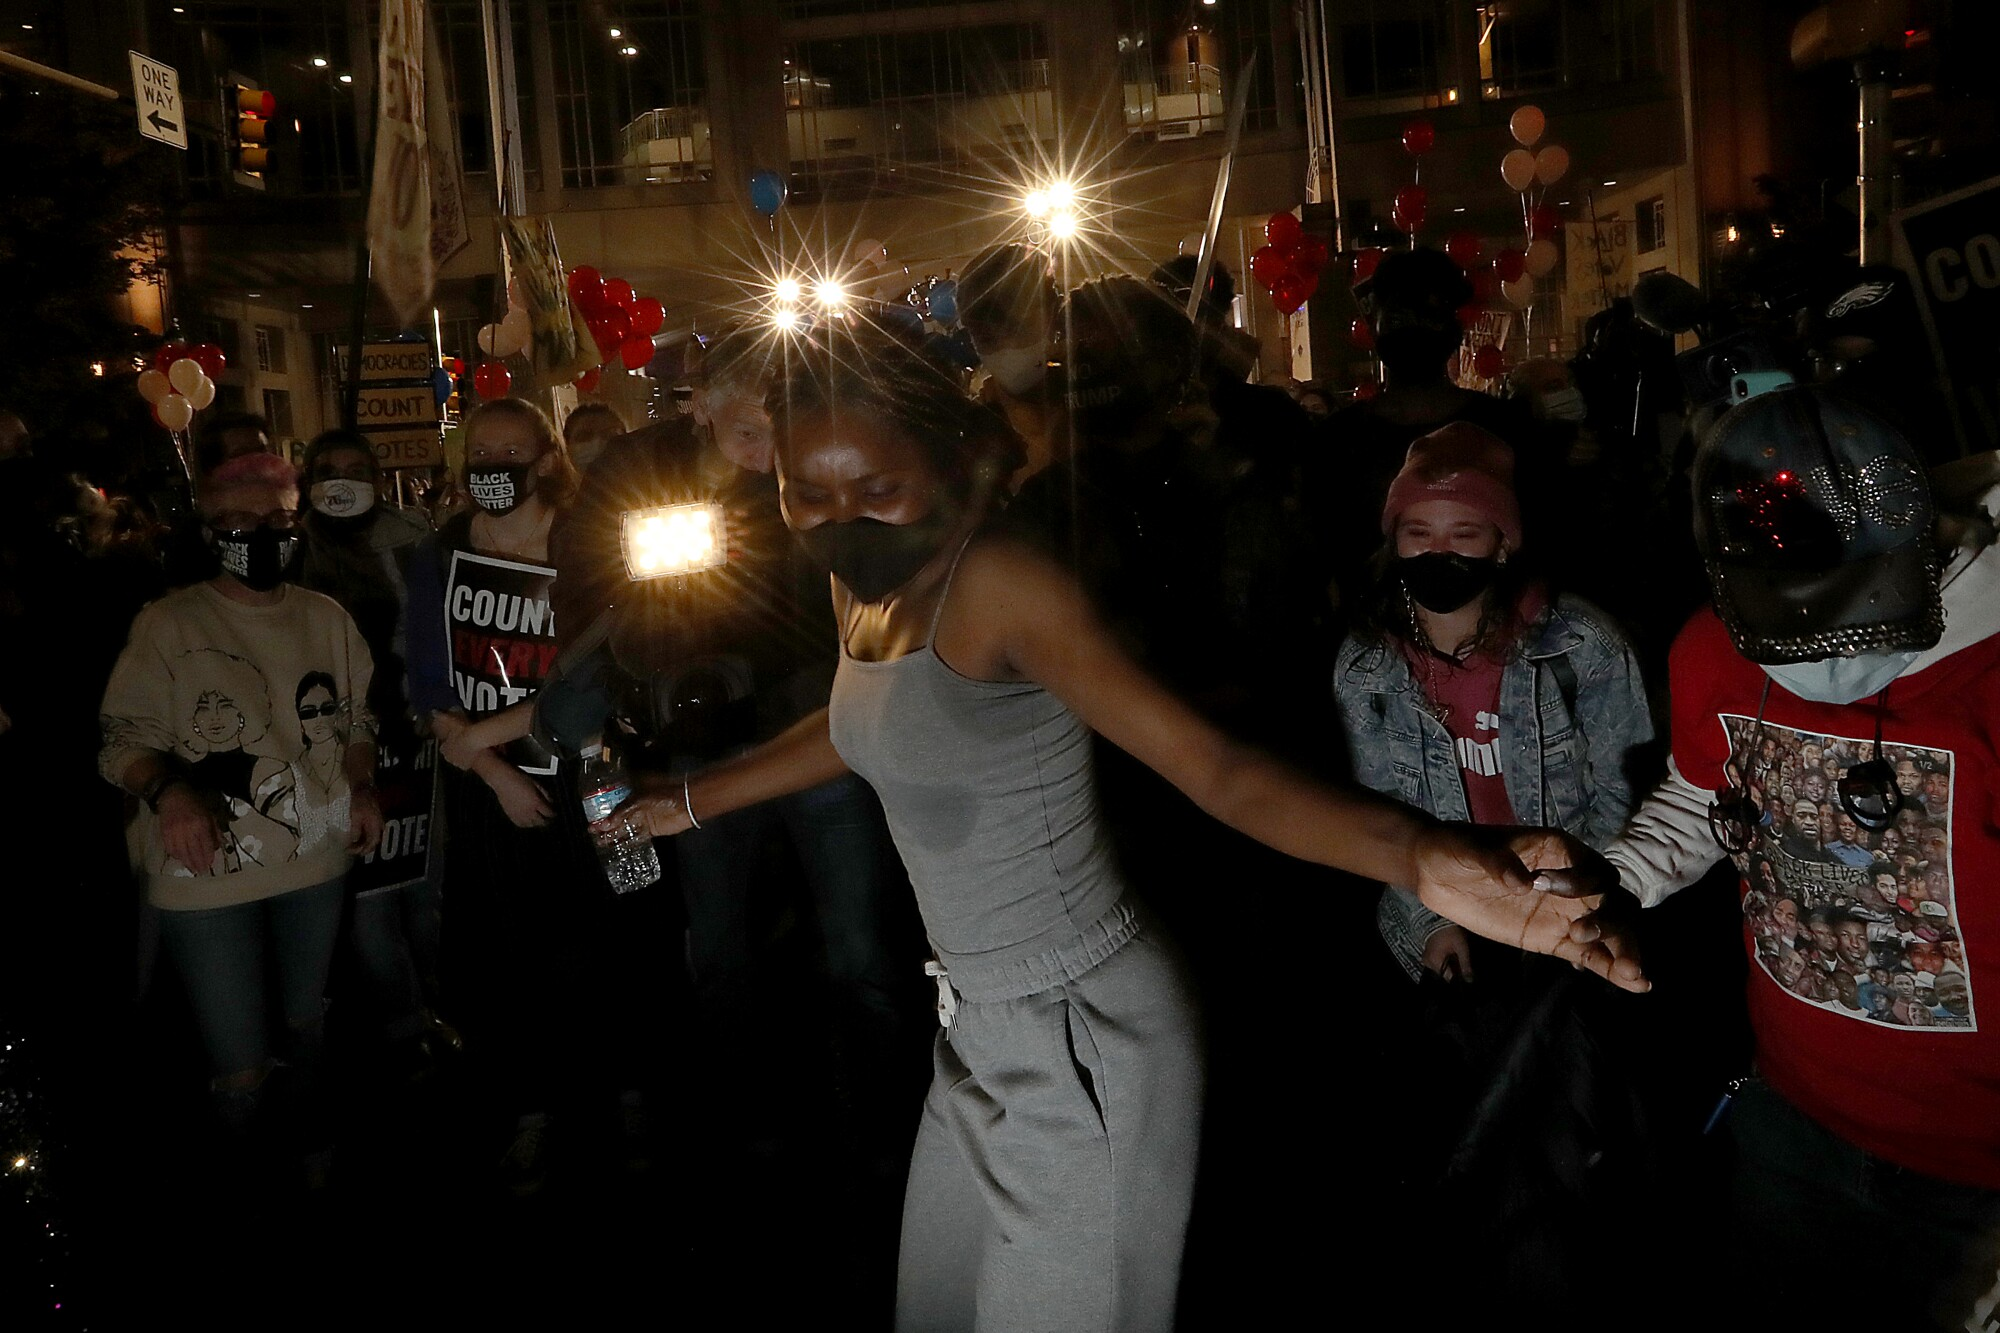 Protesters dance in the dark